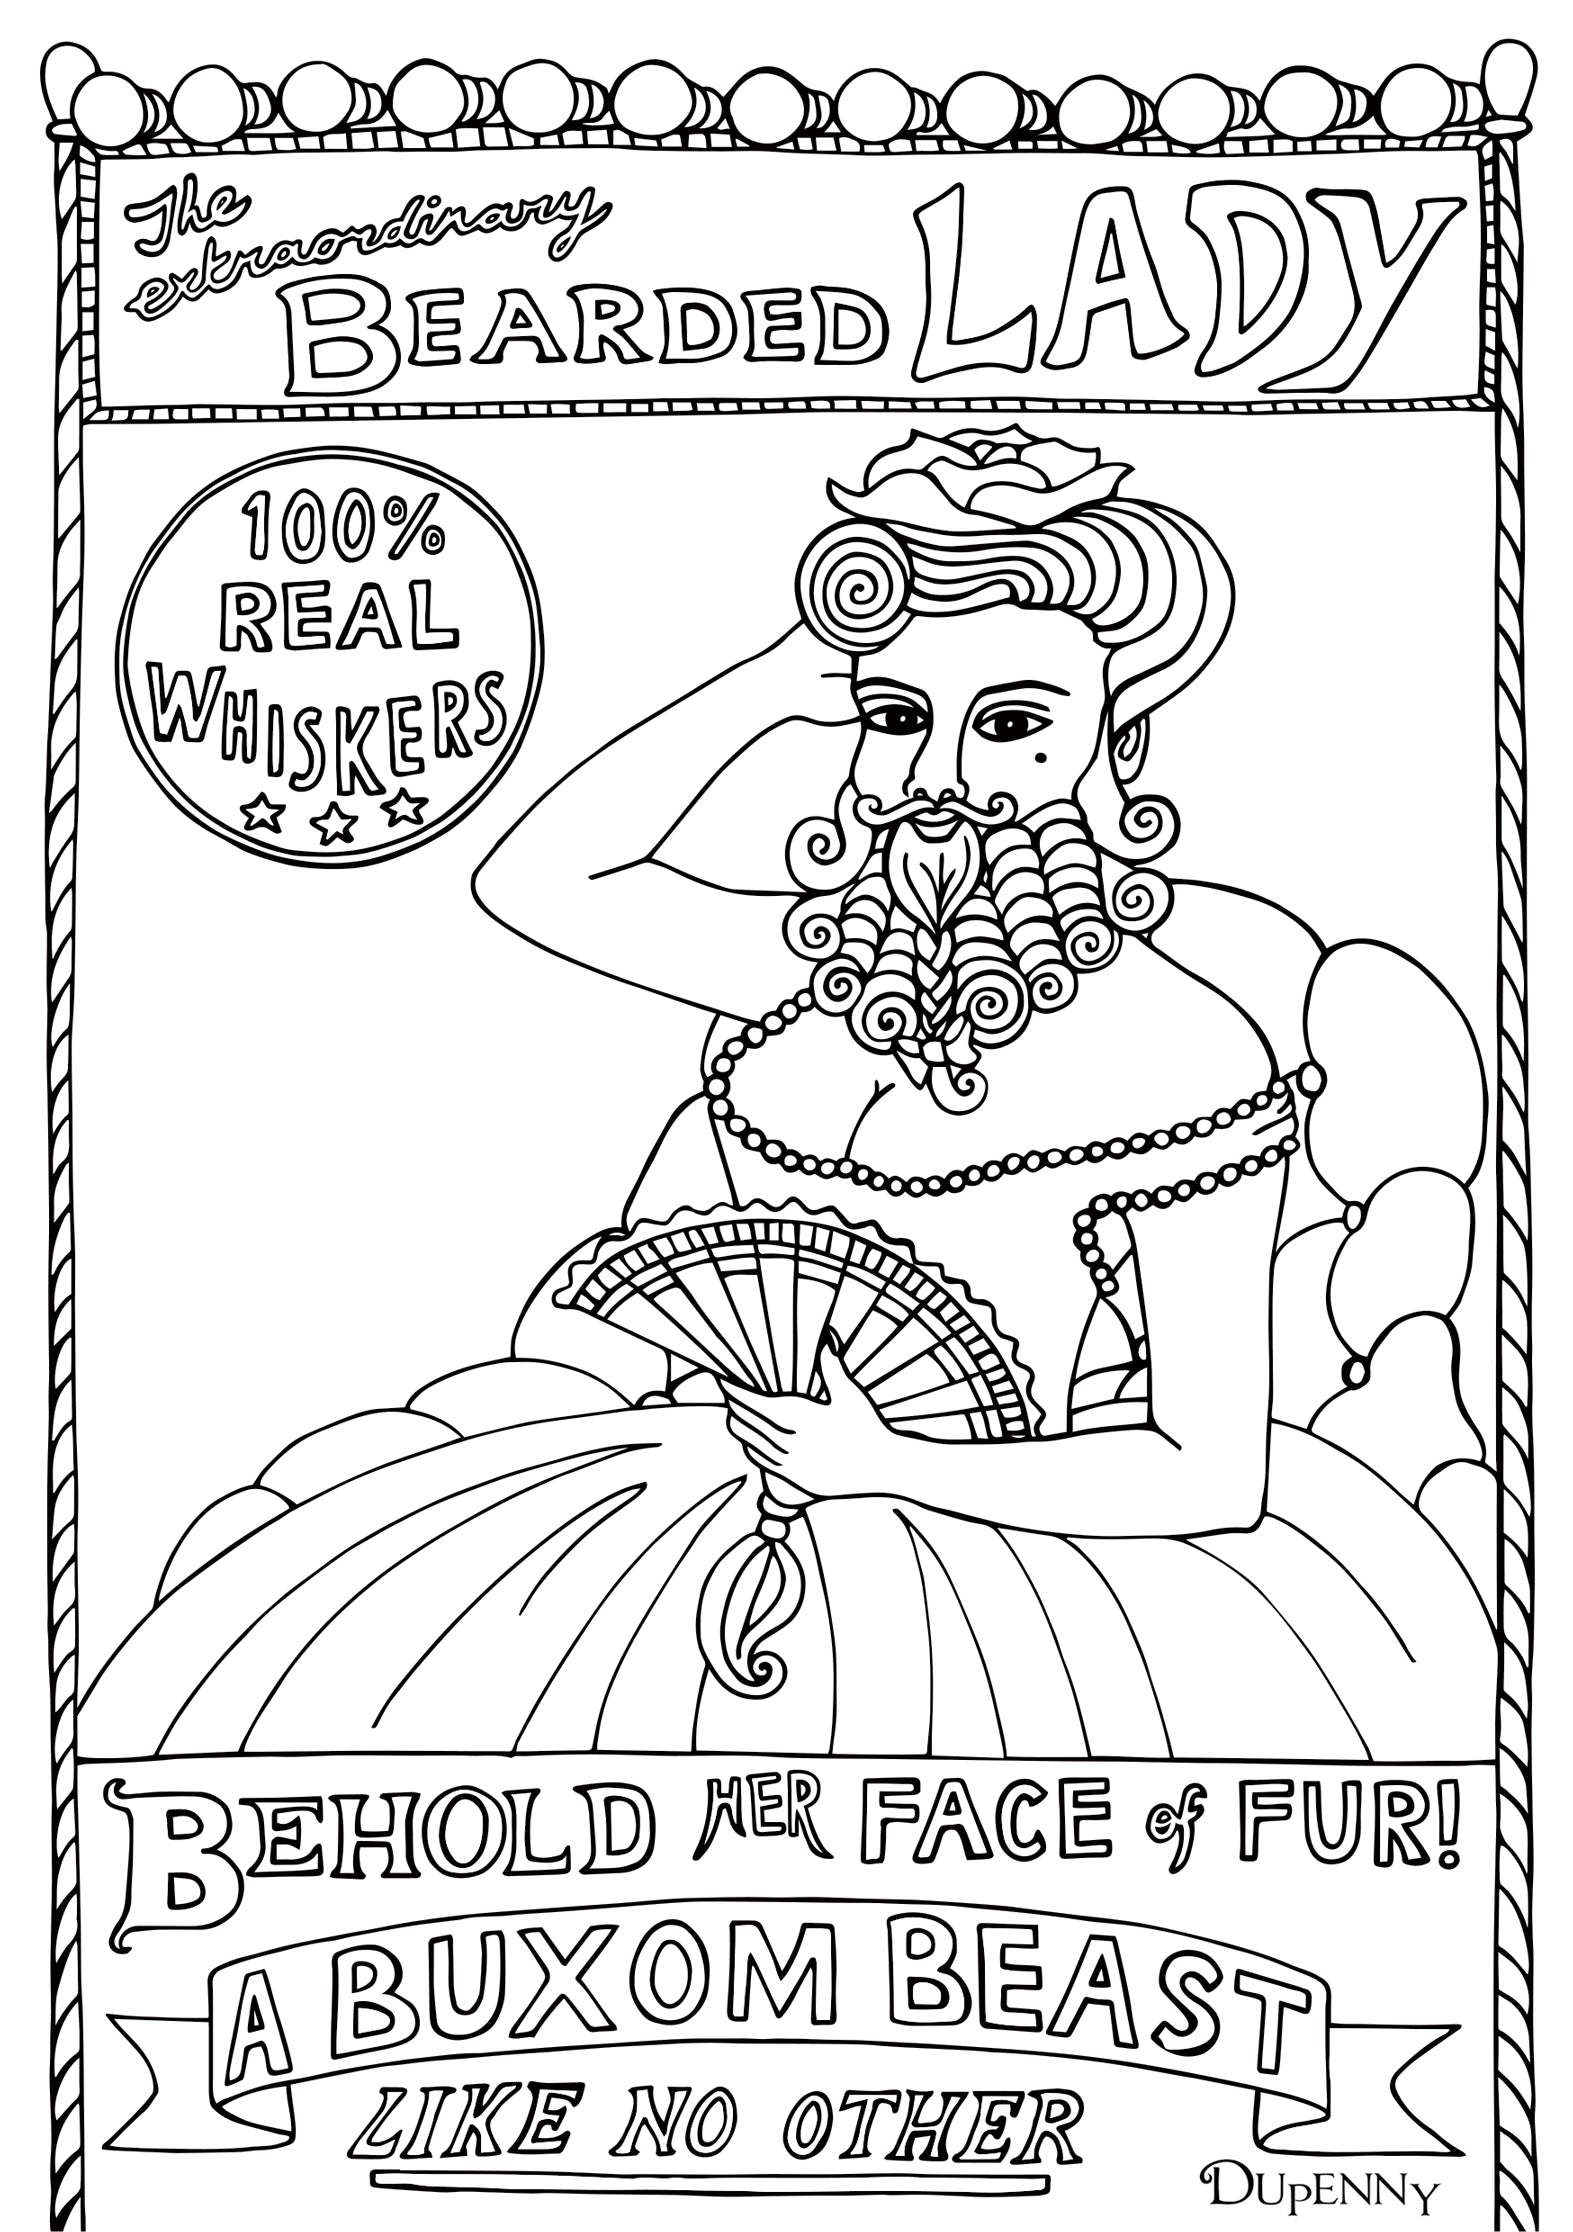 Dupenny A4 Coney Island 'Bearded Lady' Colouring Poster FREE